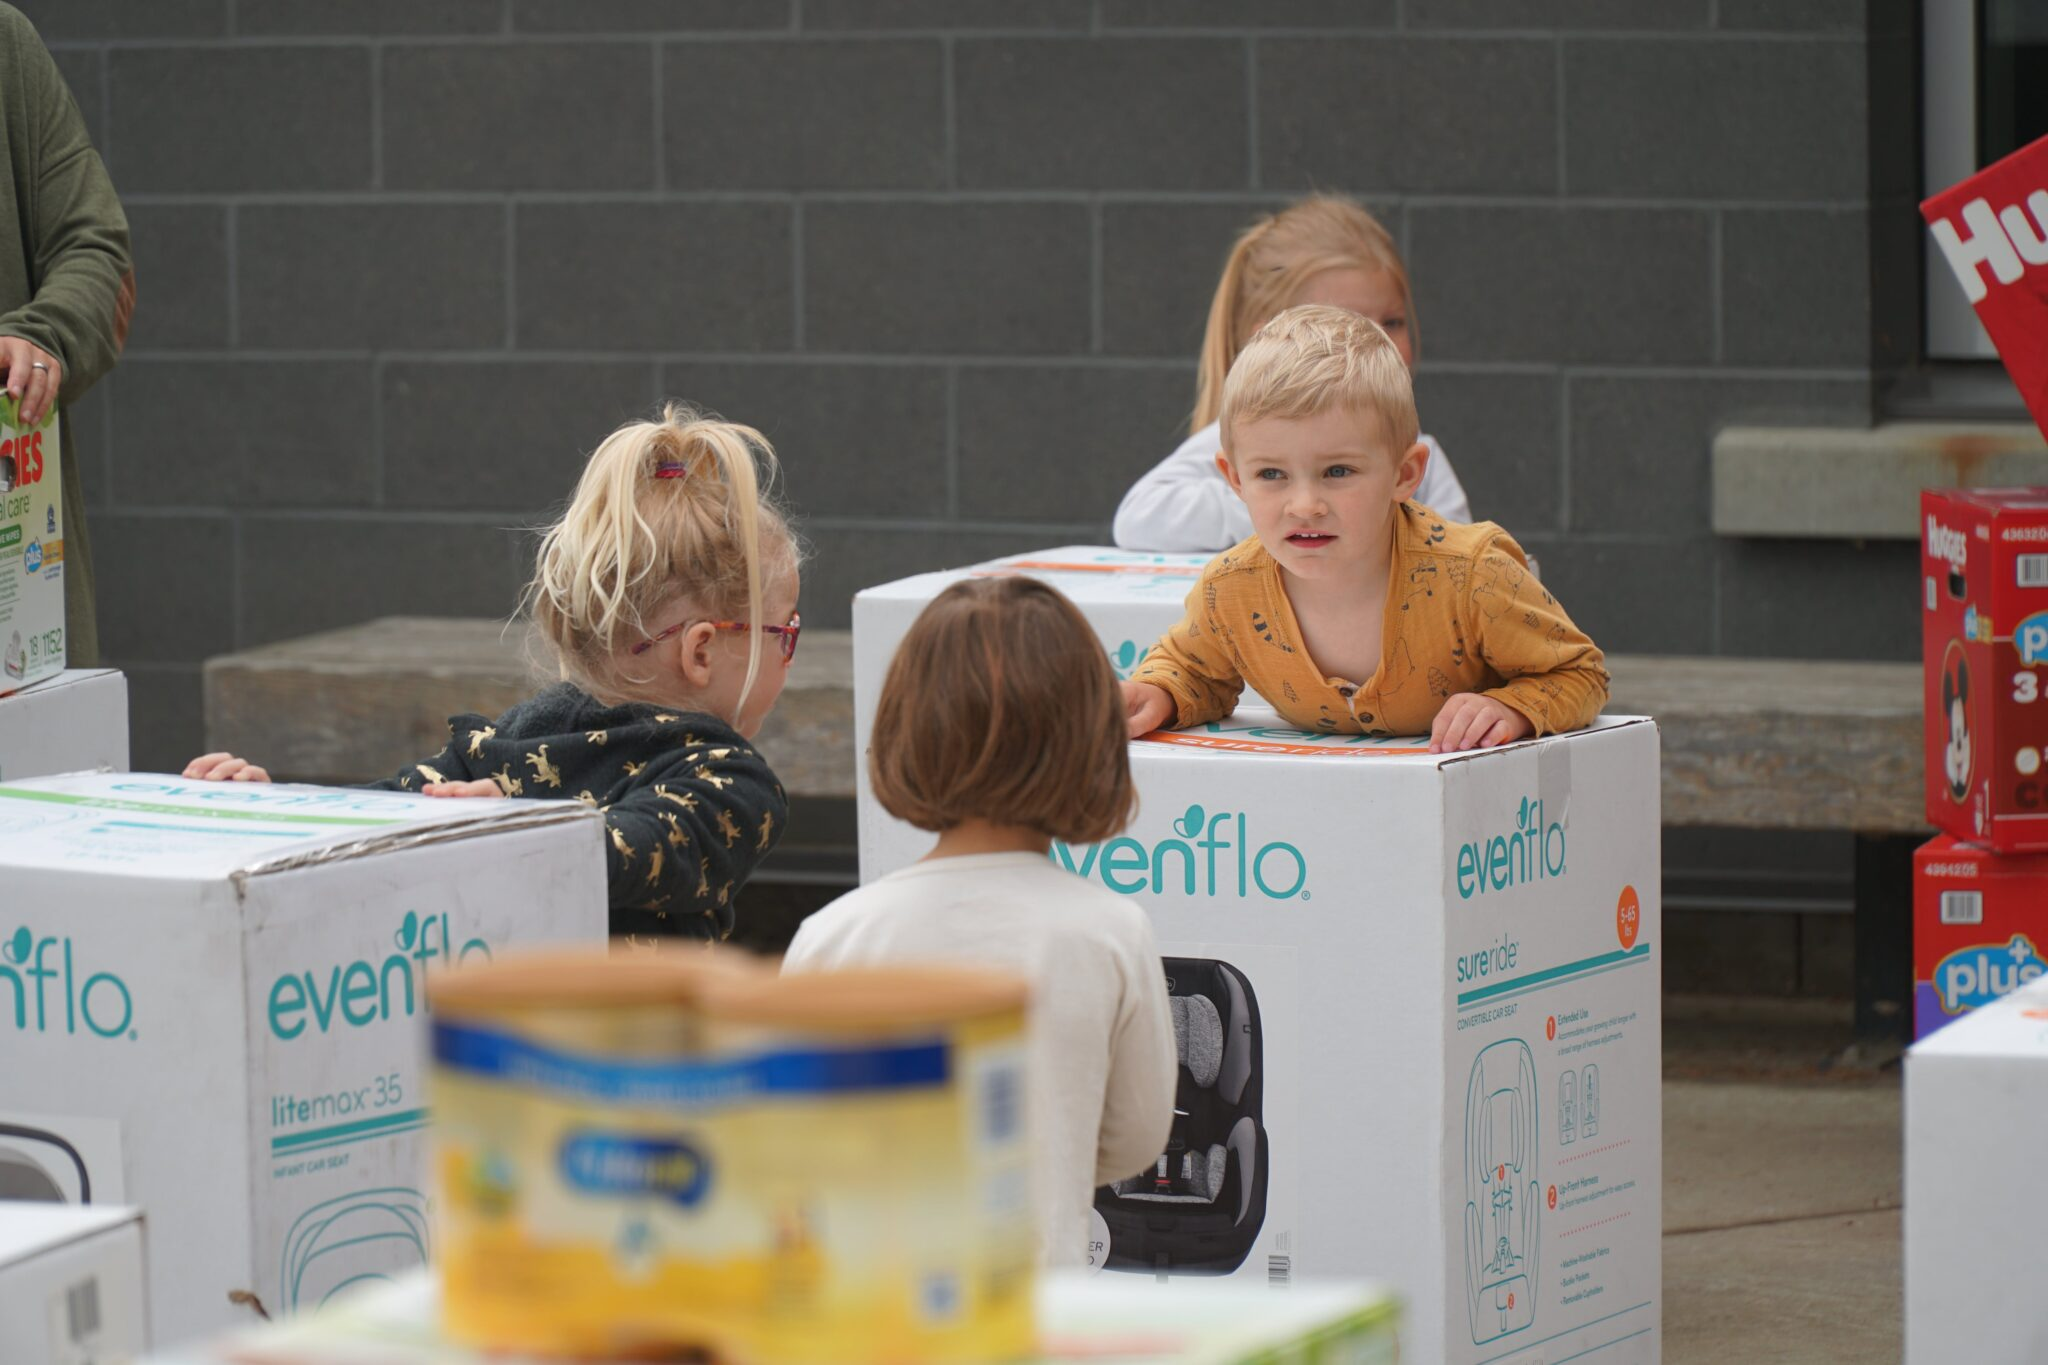 Several children sit or stand around car seat boxes. Other baby products are visible in the background and out of focus in the foreground.